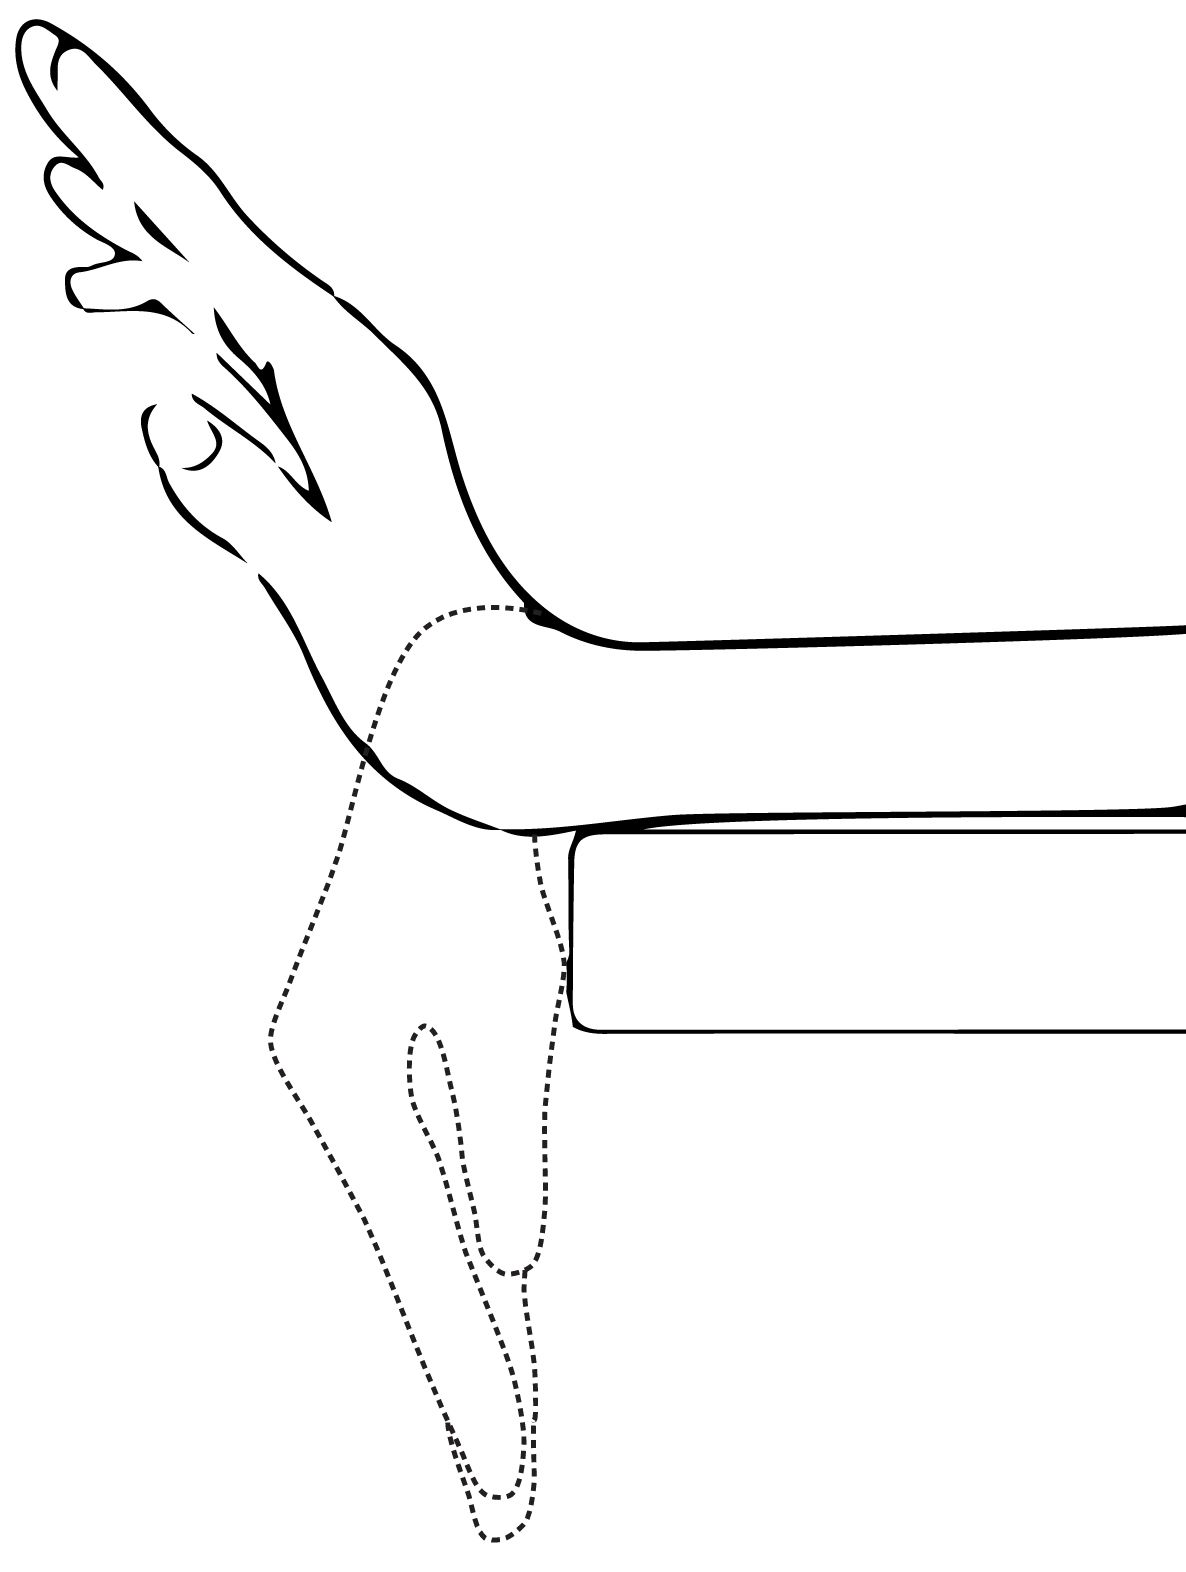 37 Hand Therapy Exercises To Improve Strength Amp Dexterity